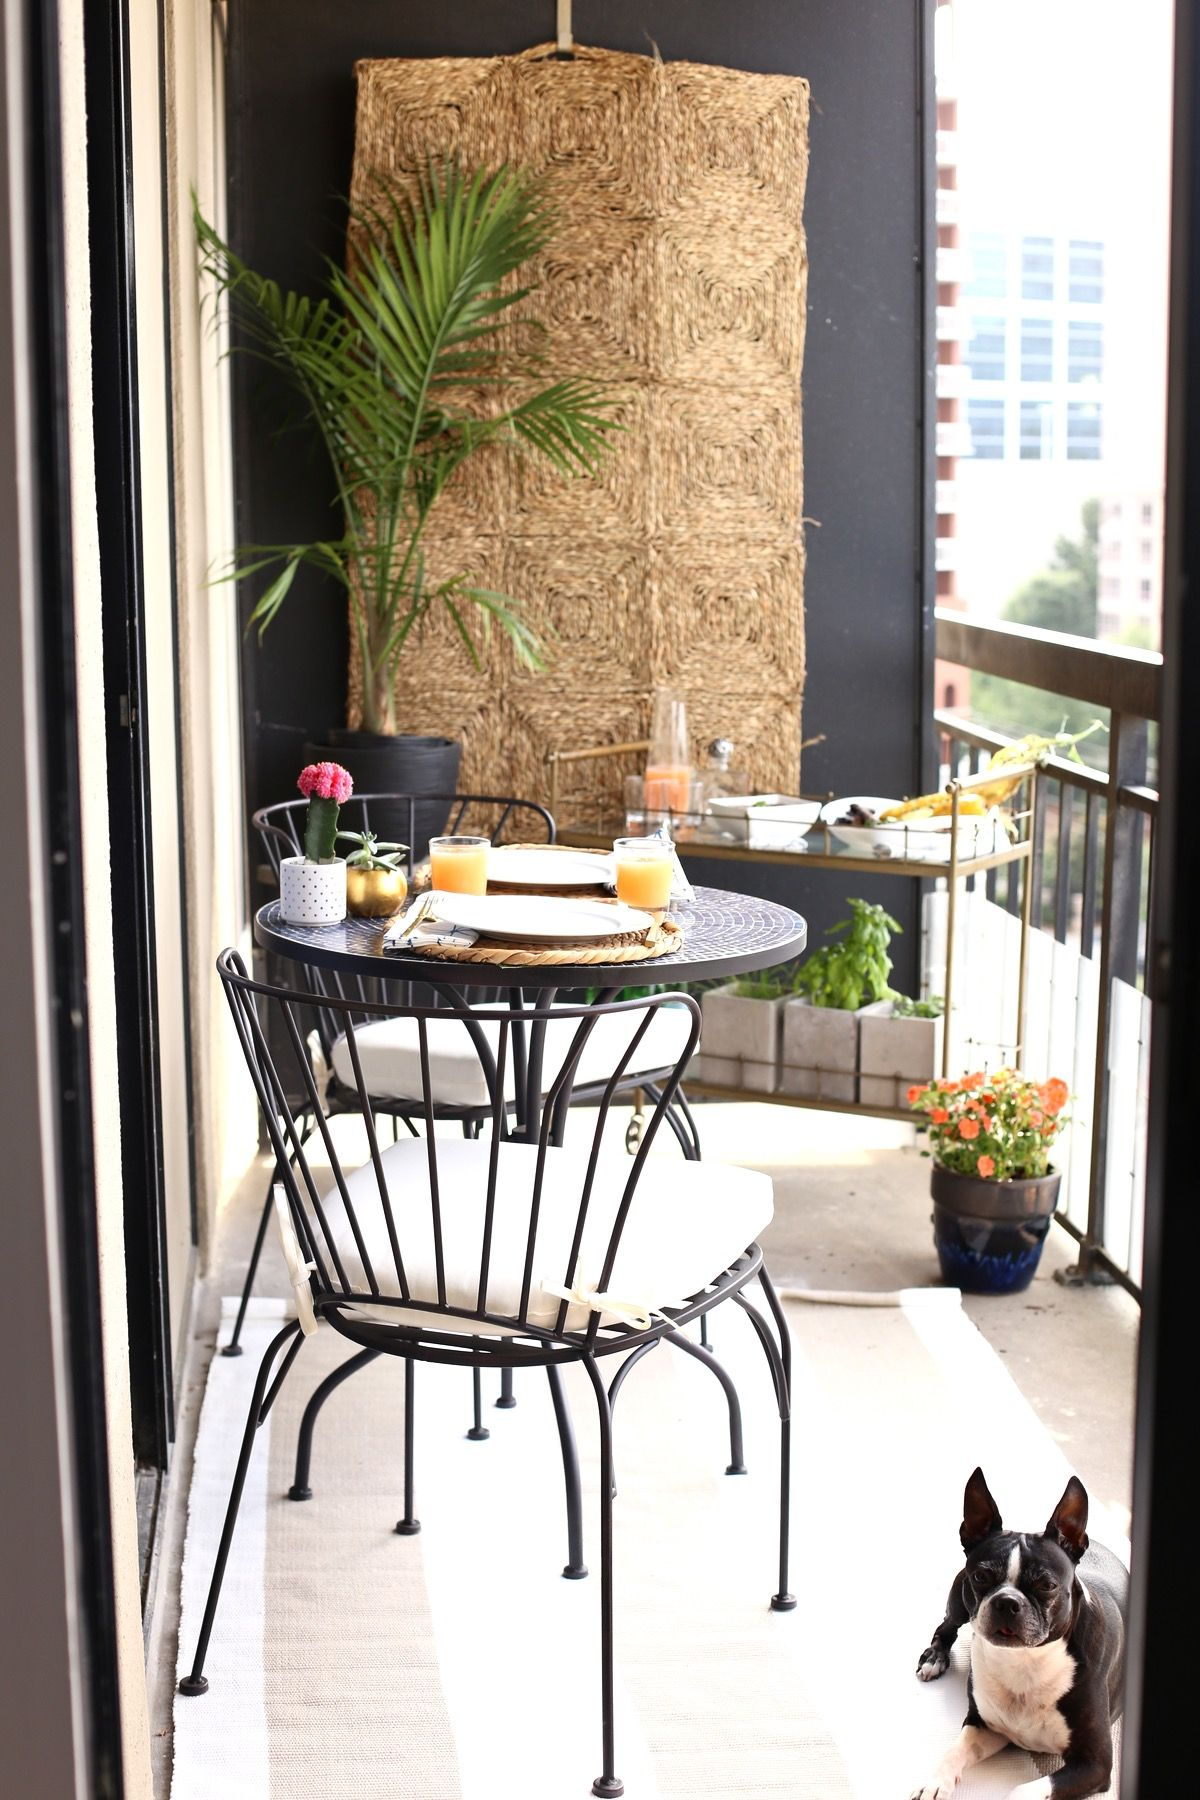 High Rise Patio Ideas Small Balcony Design Small Balcony Decor Small Apartment Balcony Ideas